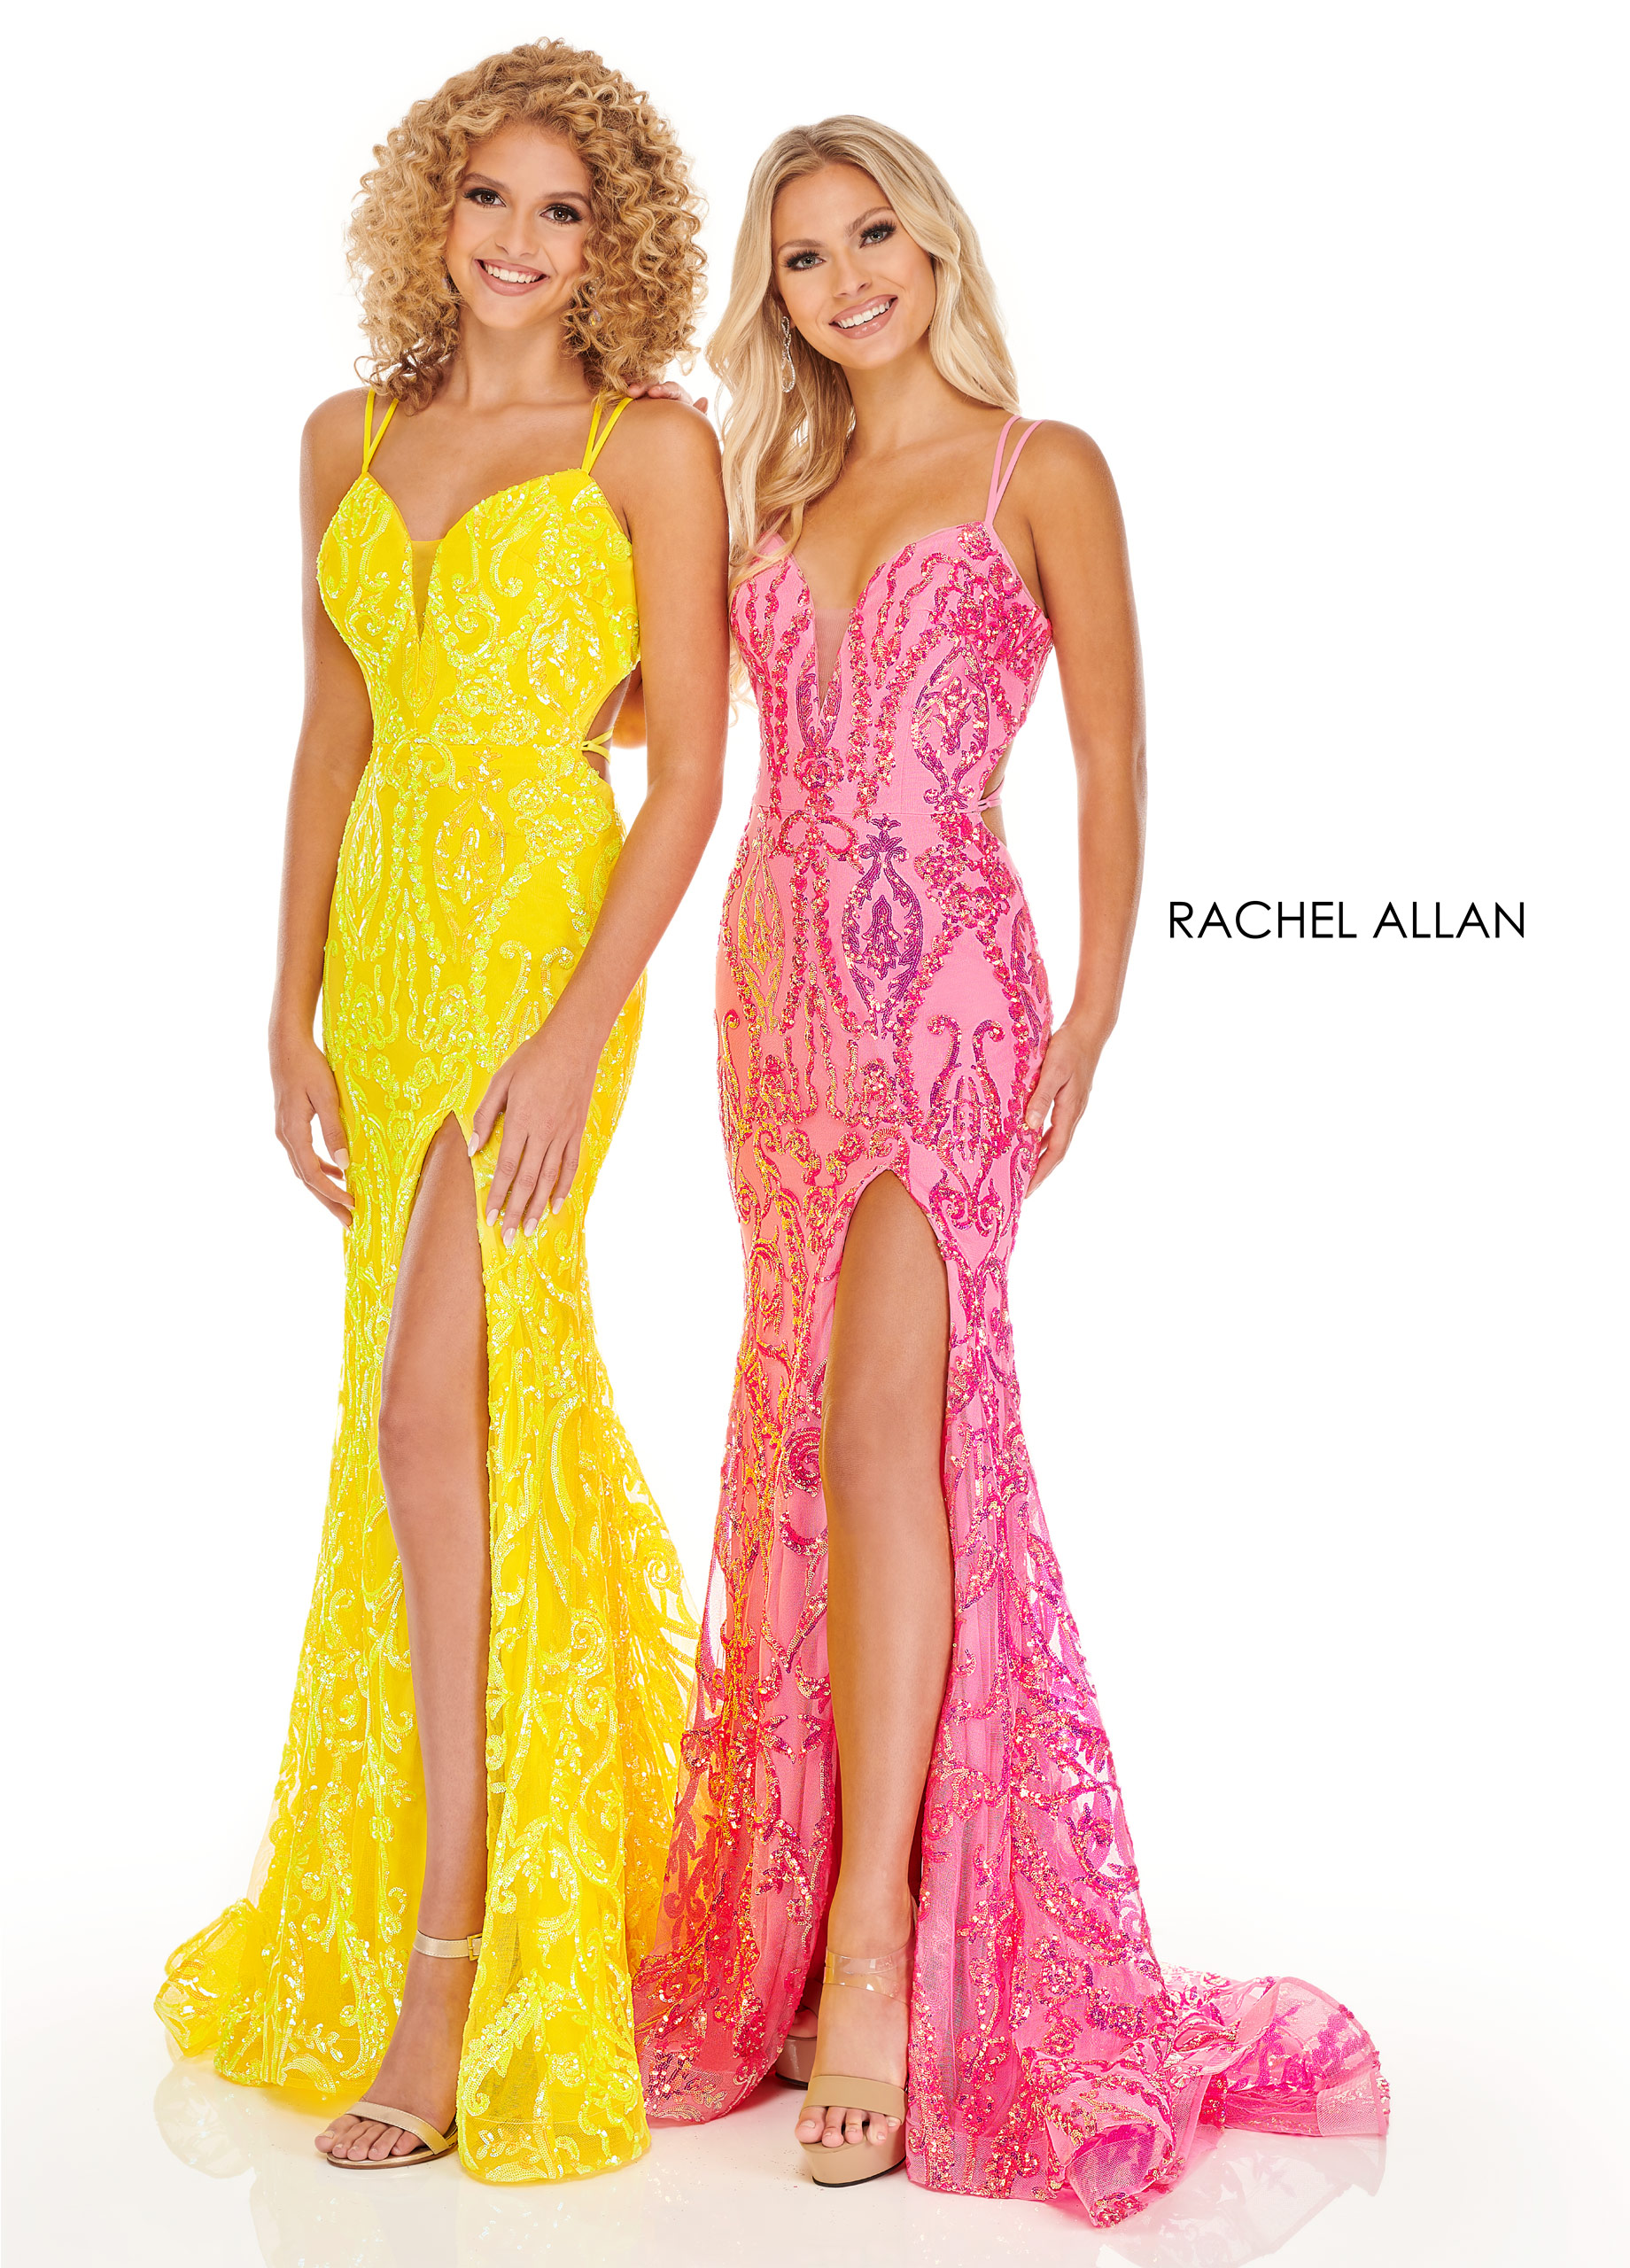 Sweetheart Fit & Flare Prom Dresses in Yellow Color